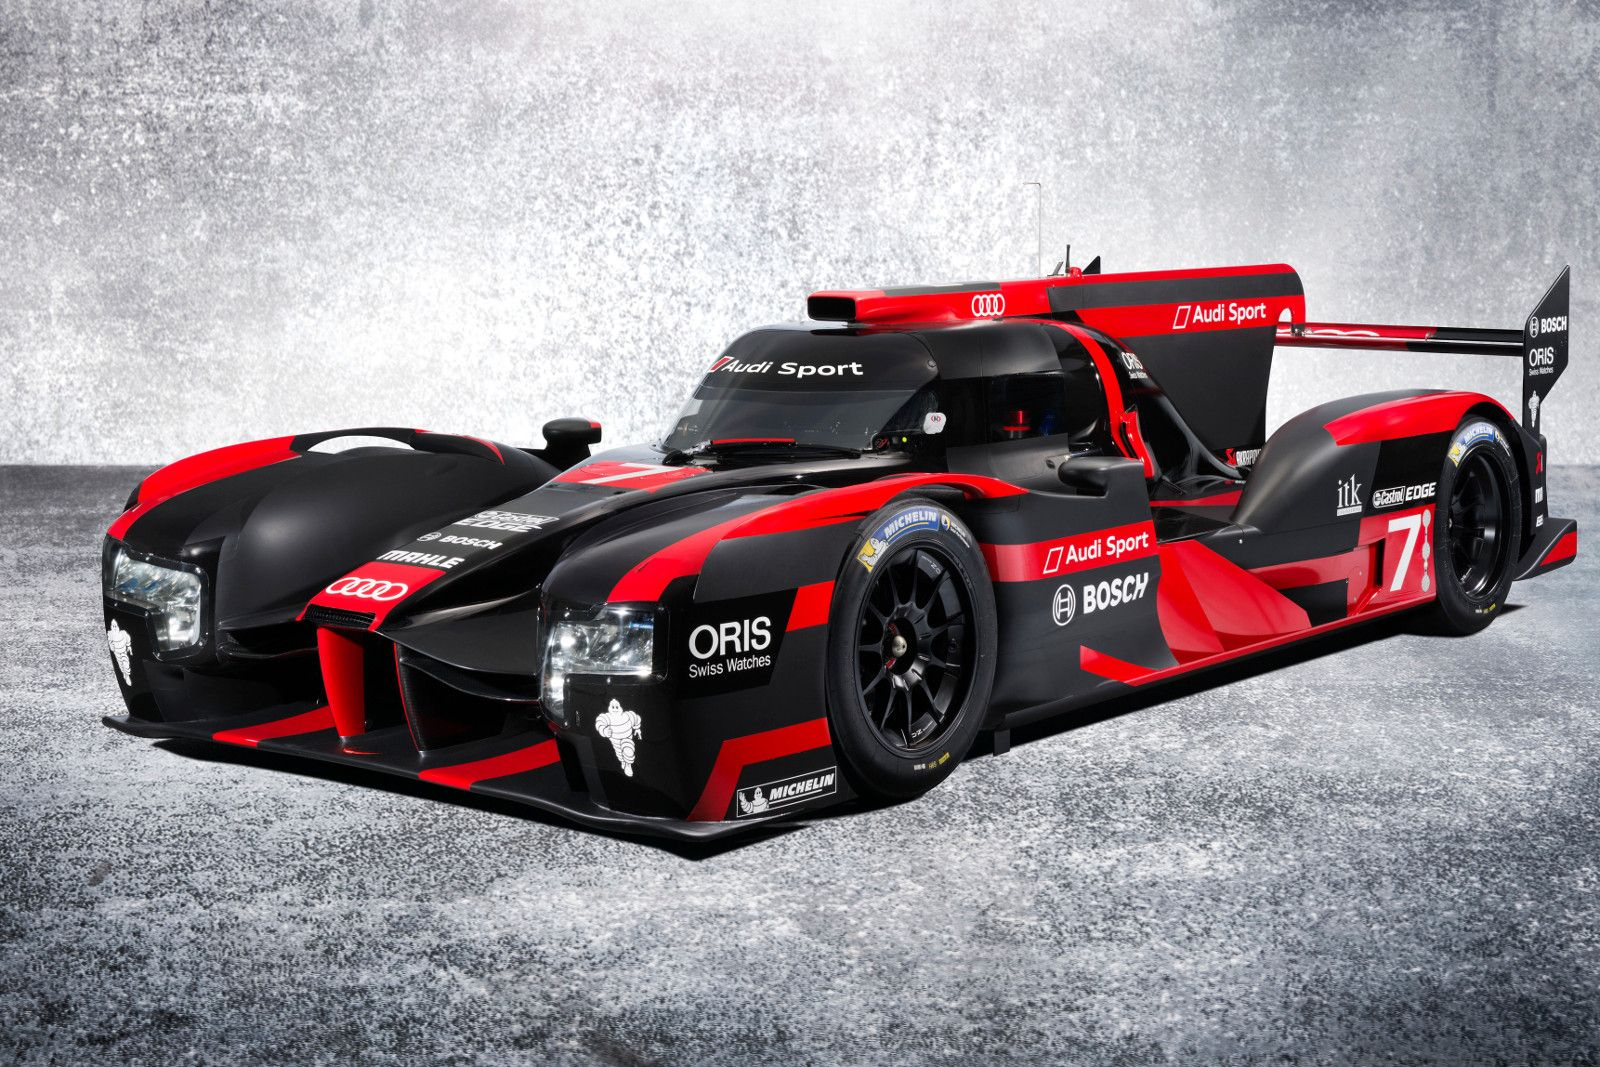 audi r18 lmp1 2016 nouveau look nouvelles performances thm magazine. Black Bedroom Furniture Sets. Home Design Ideas